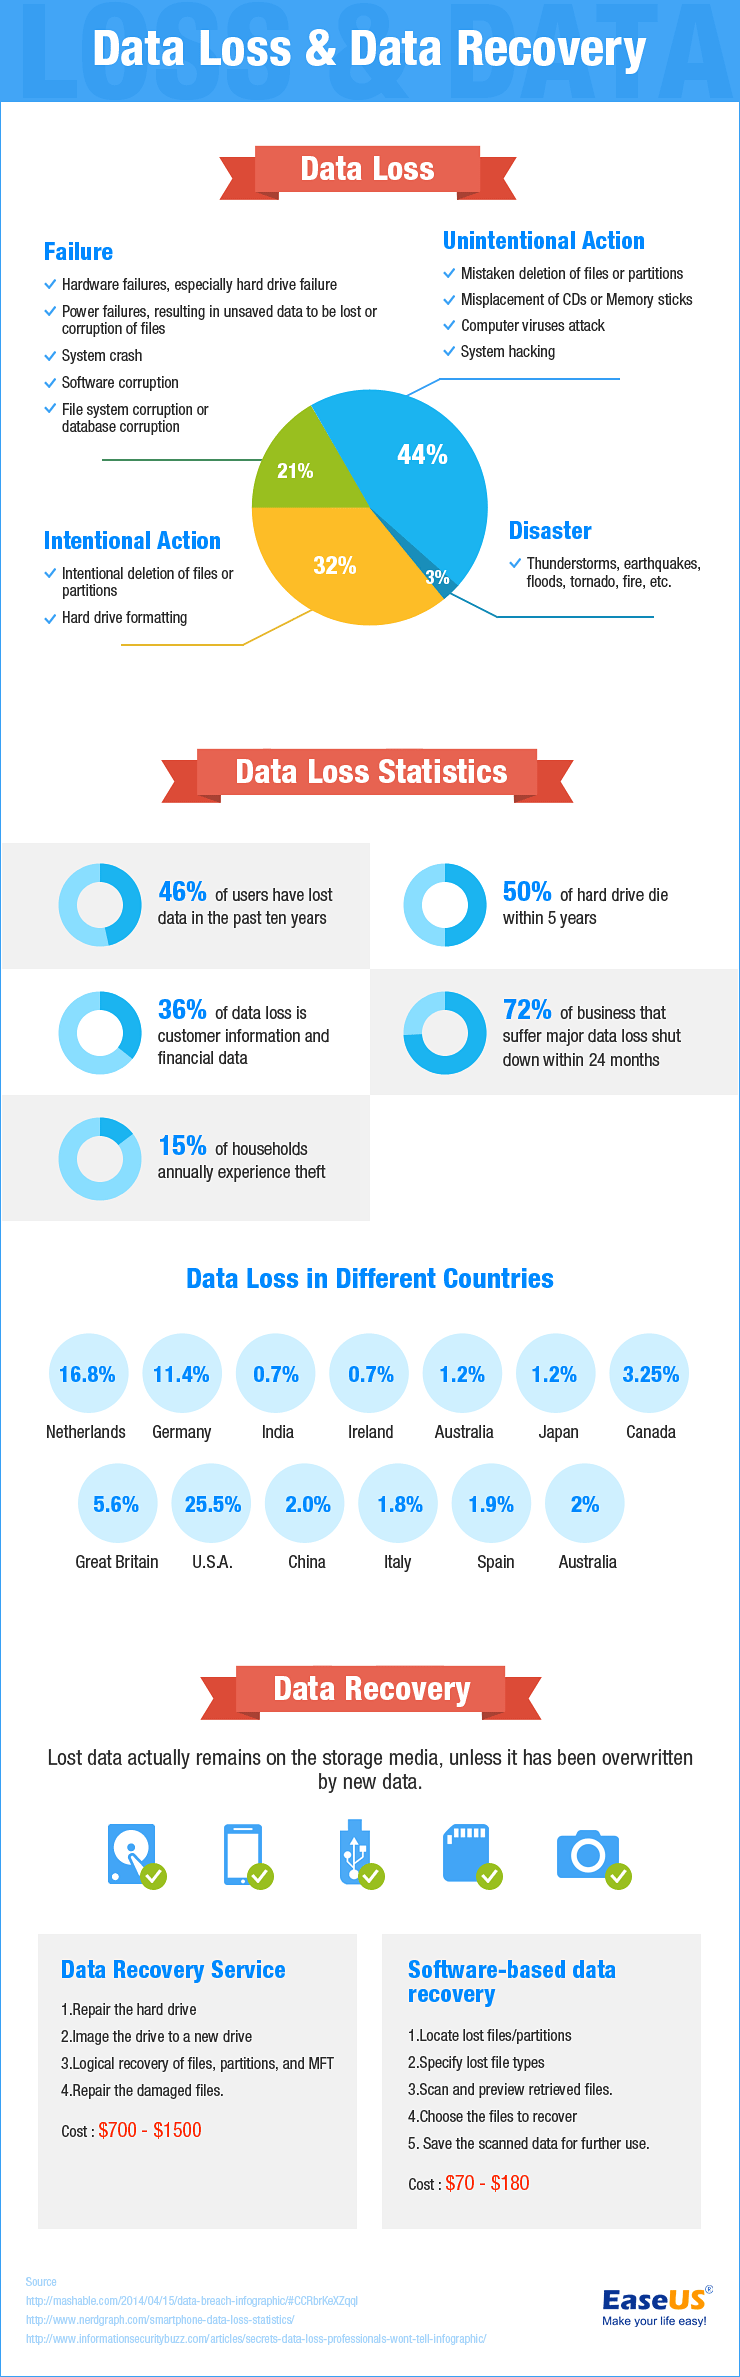 Data Loss & Recovery - Infographic